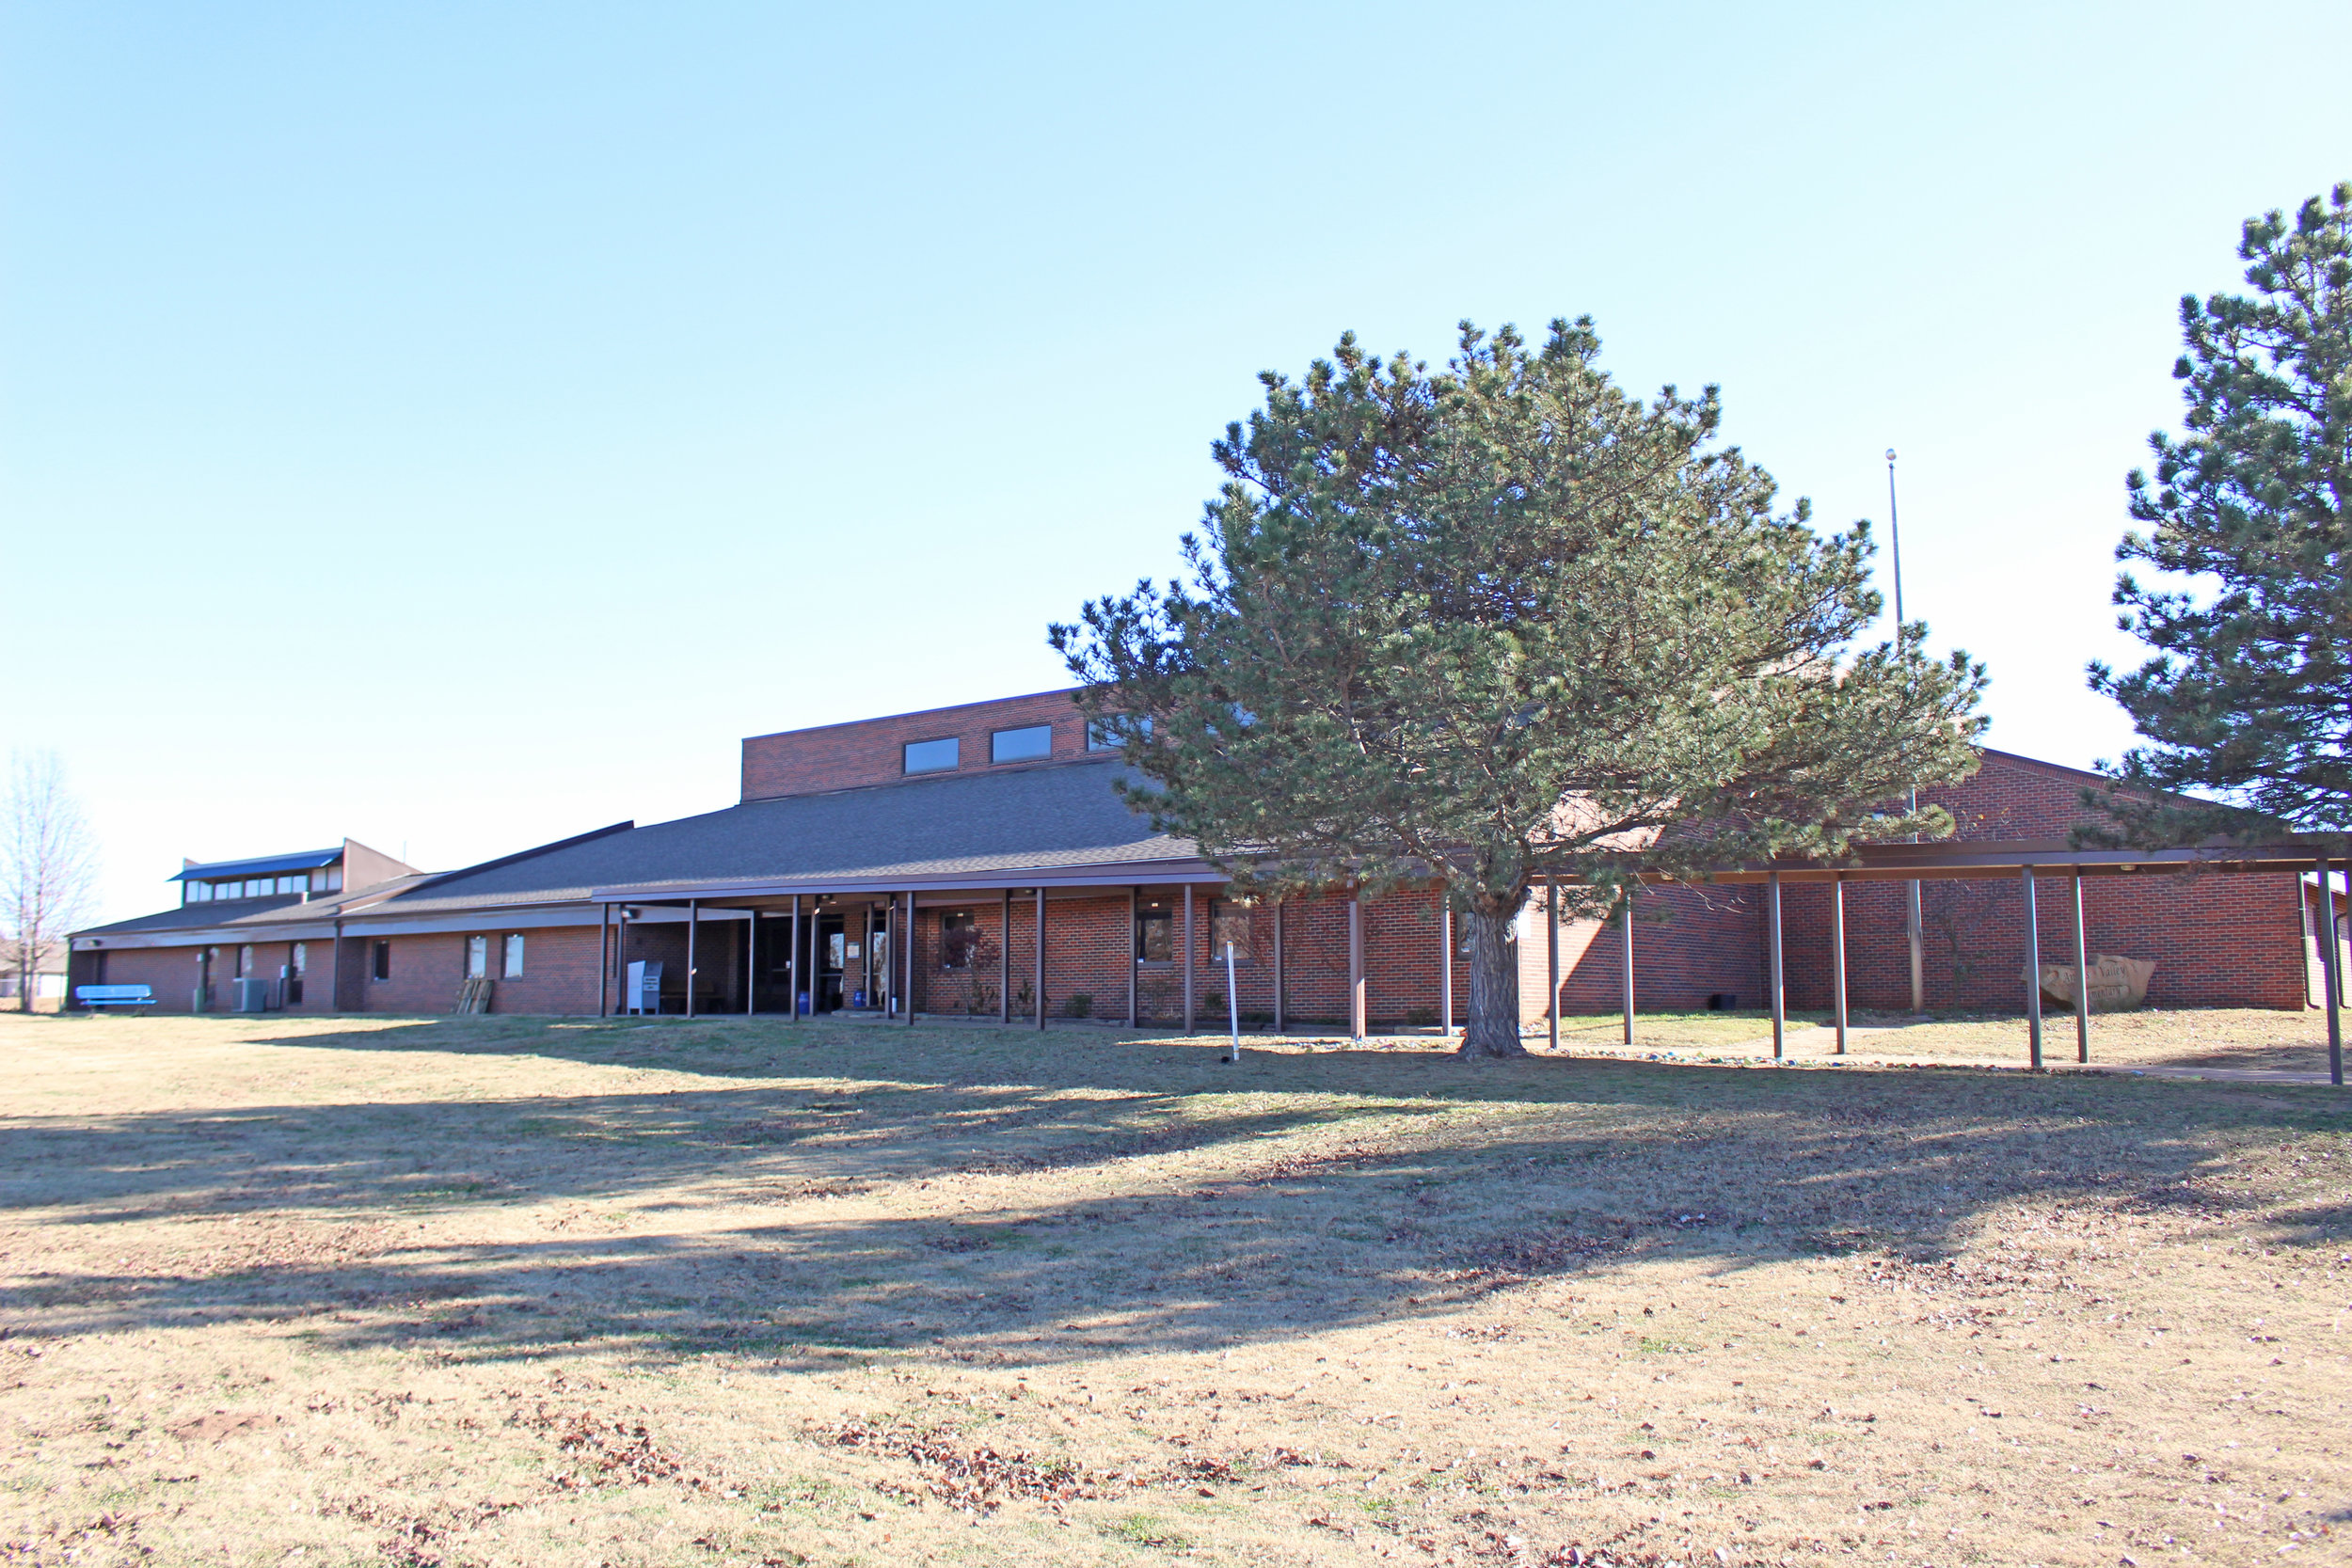 angus valley elementary - prattville Sand springs public schools 412 west 55th street